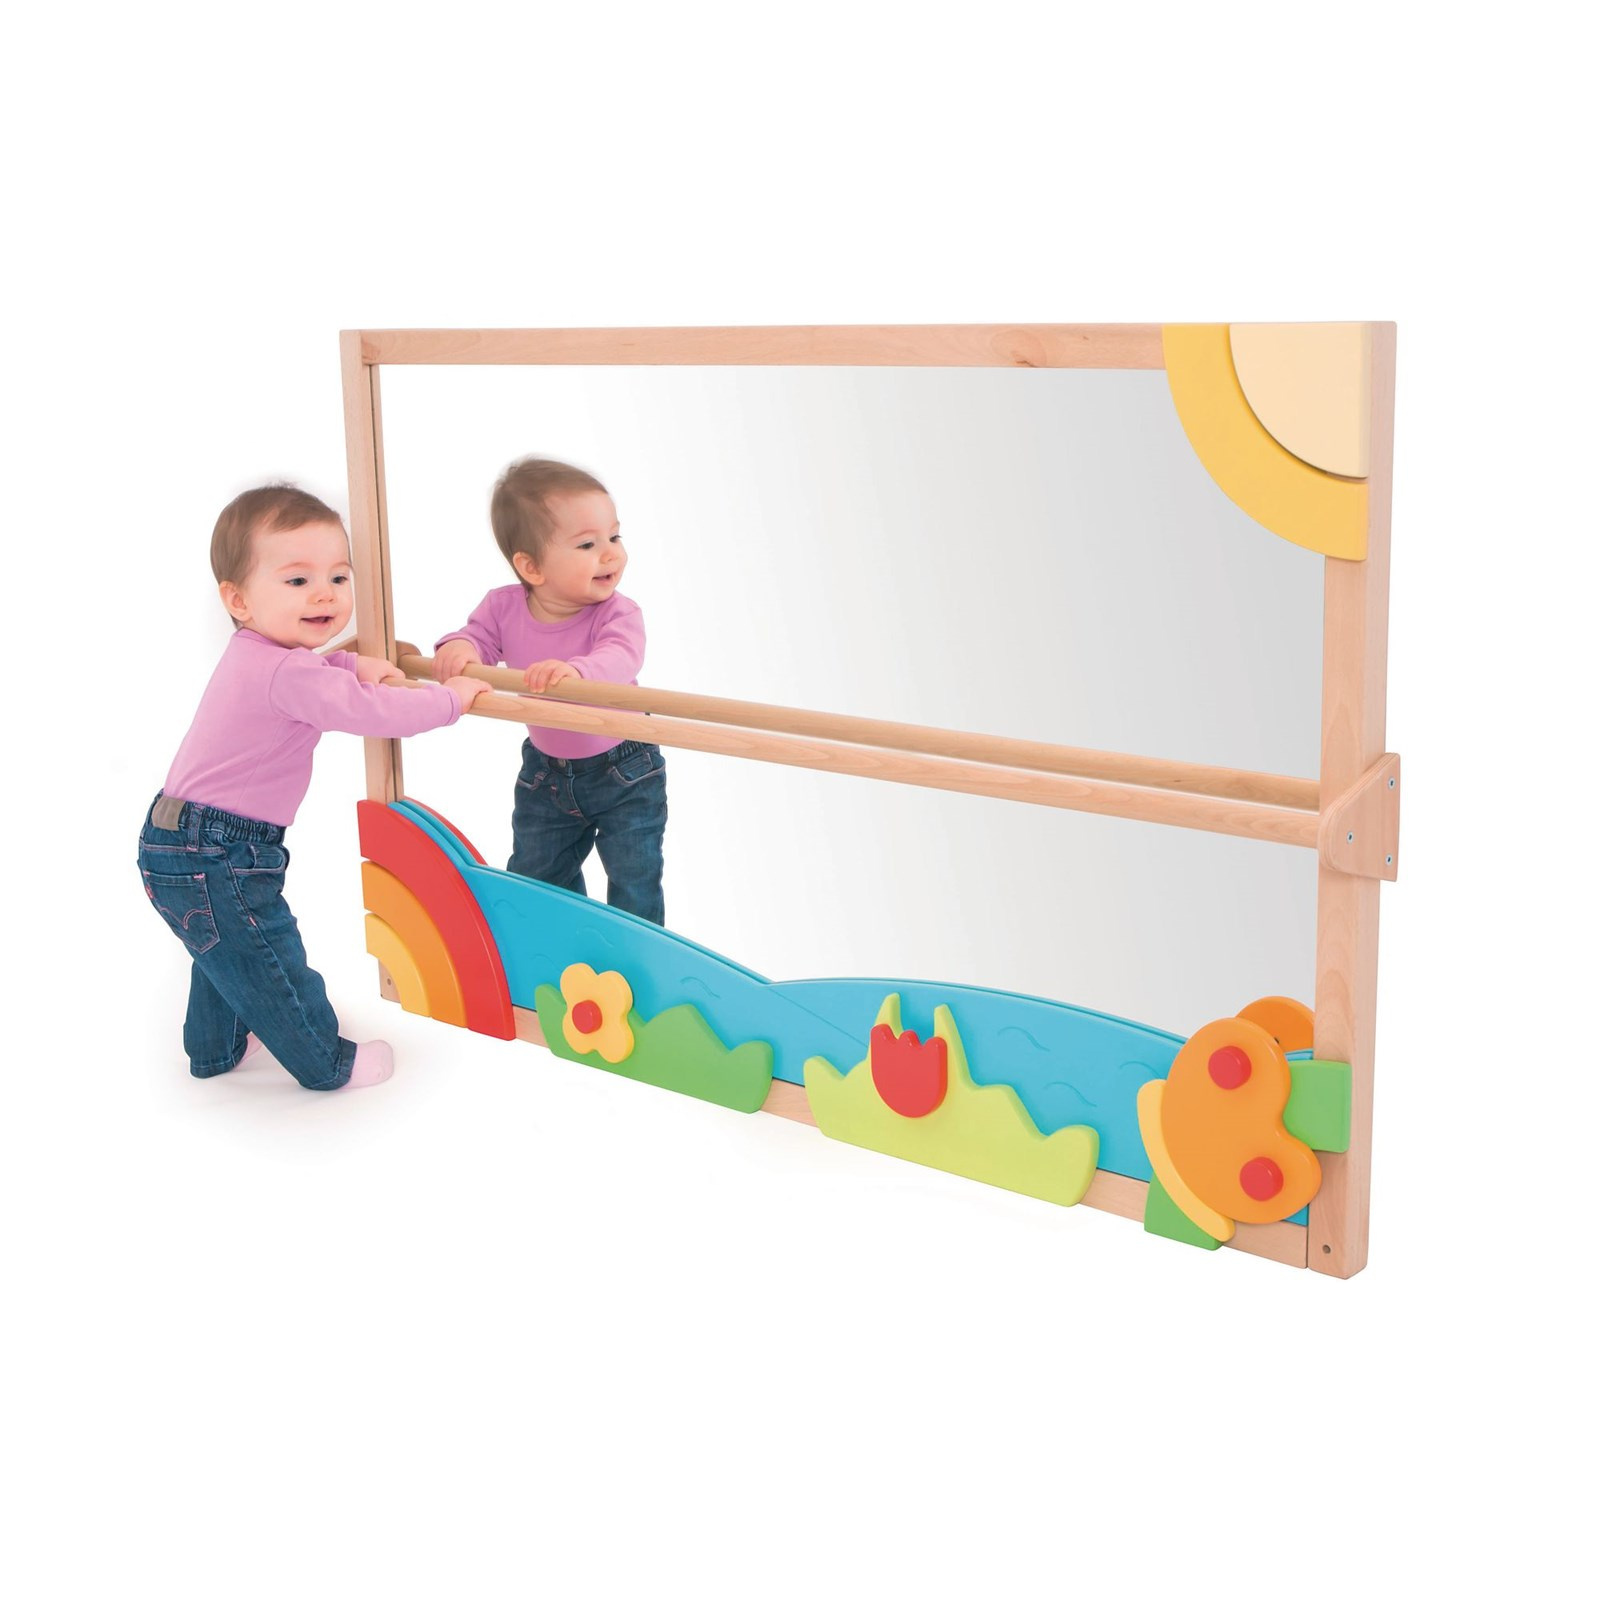 Playscapes Large Pull Up And Play Toddler Mirror